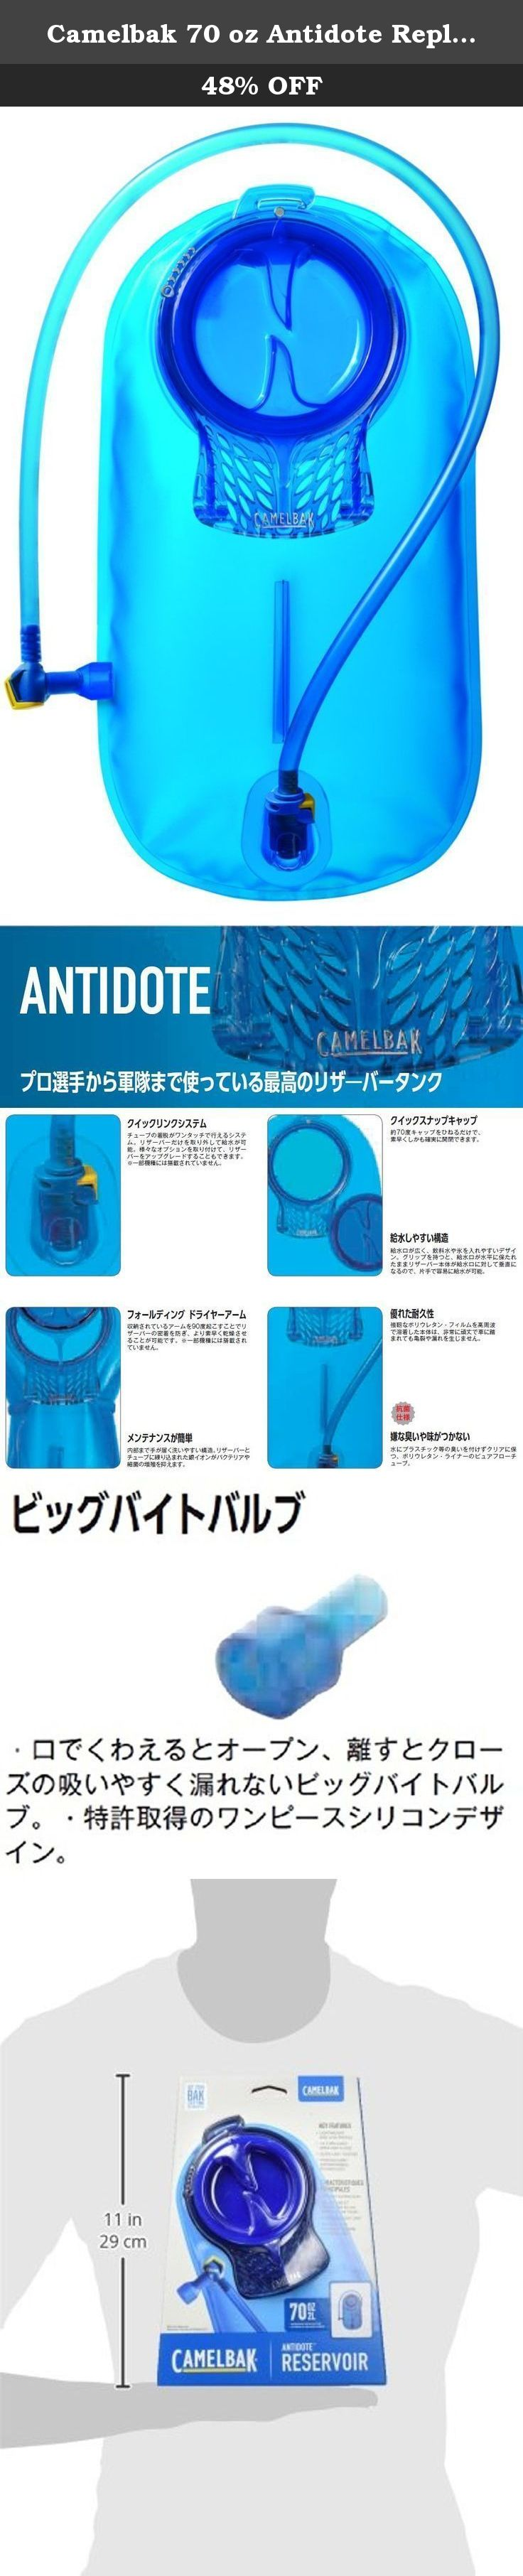 00a96beed3 Camelbak 70 oz Antidote Replacement Reservoir. Intended use: Crankset  Function: Hydration system .